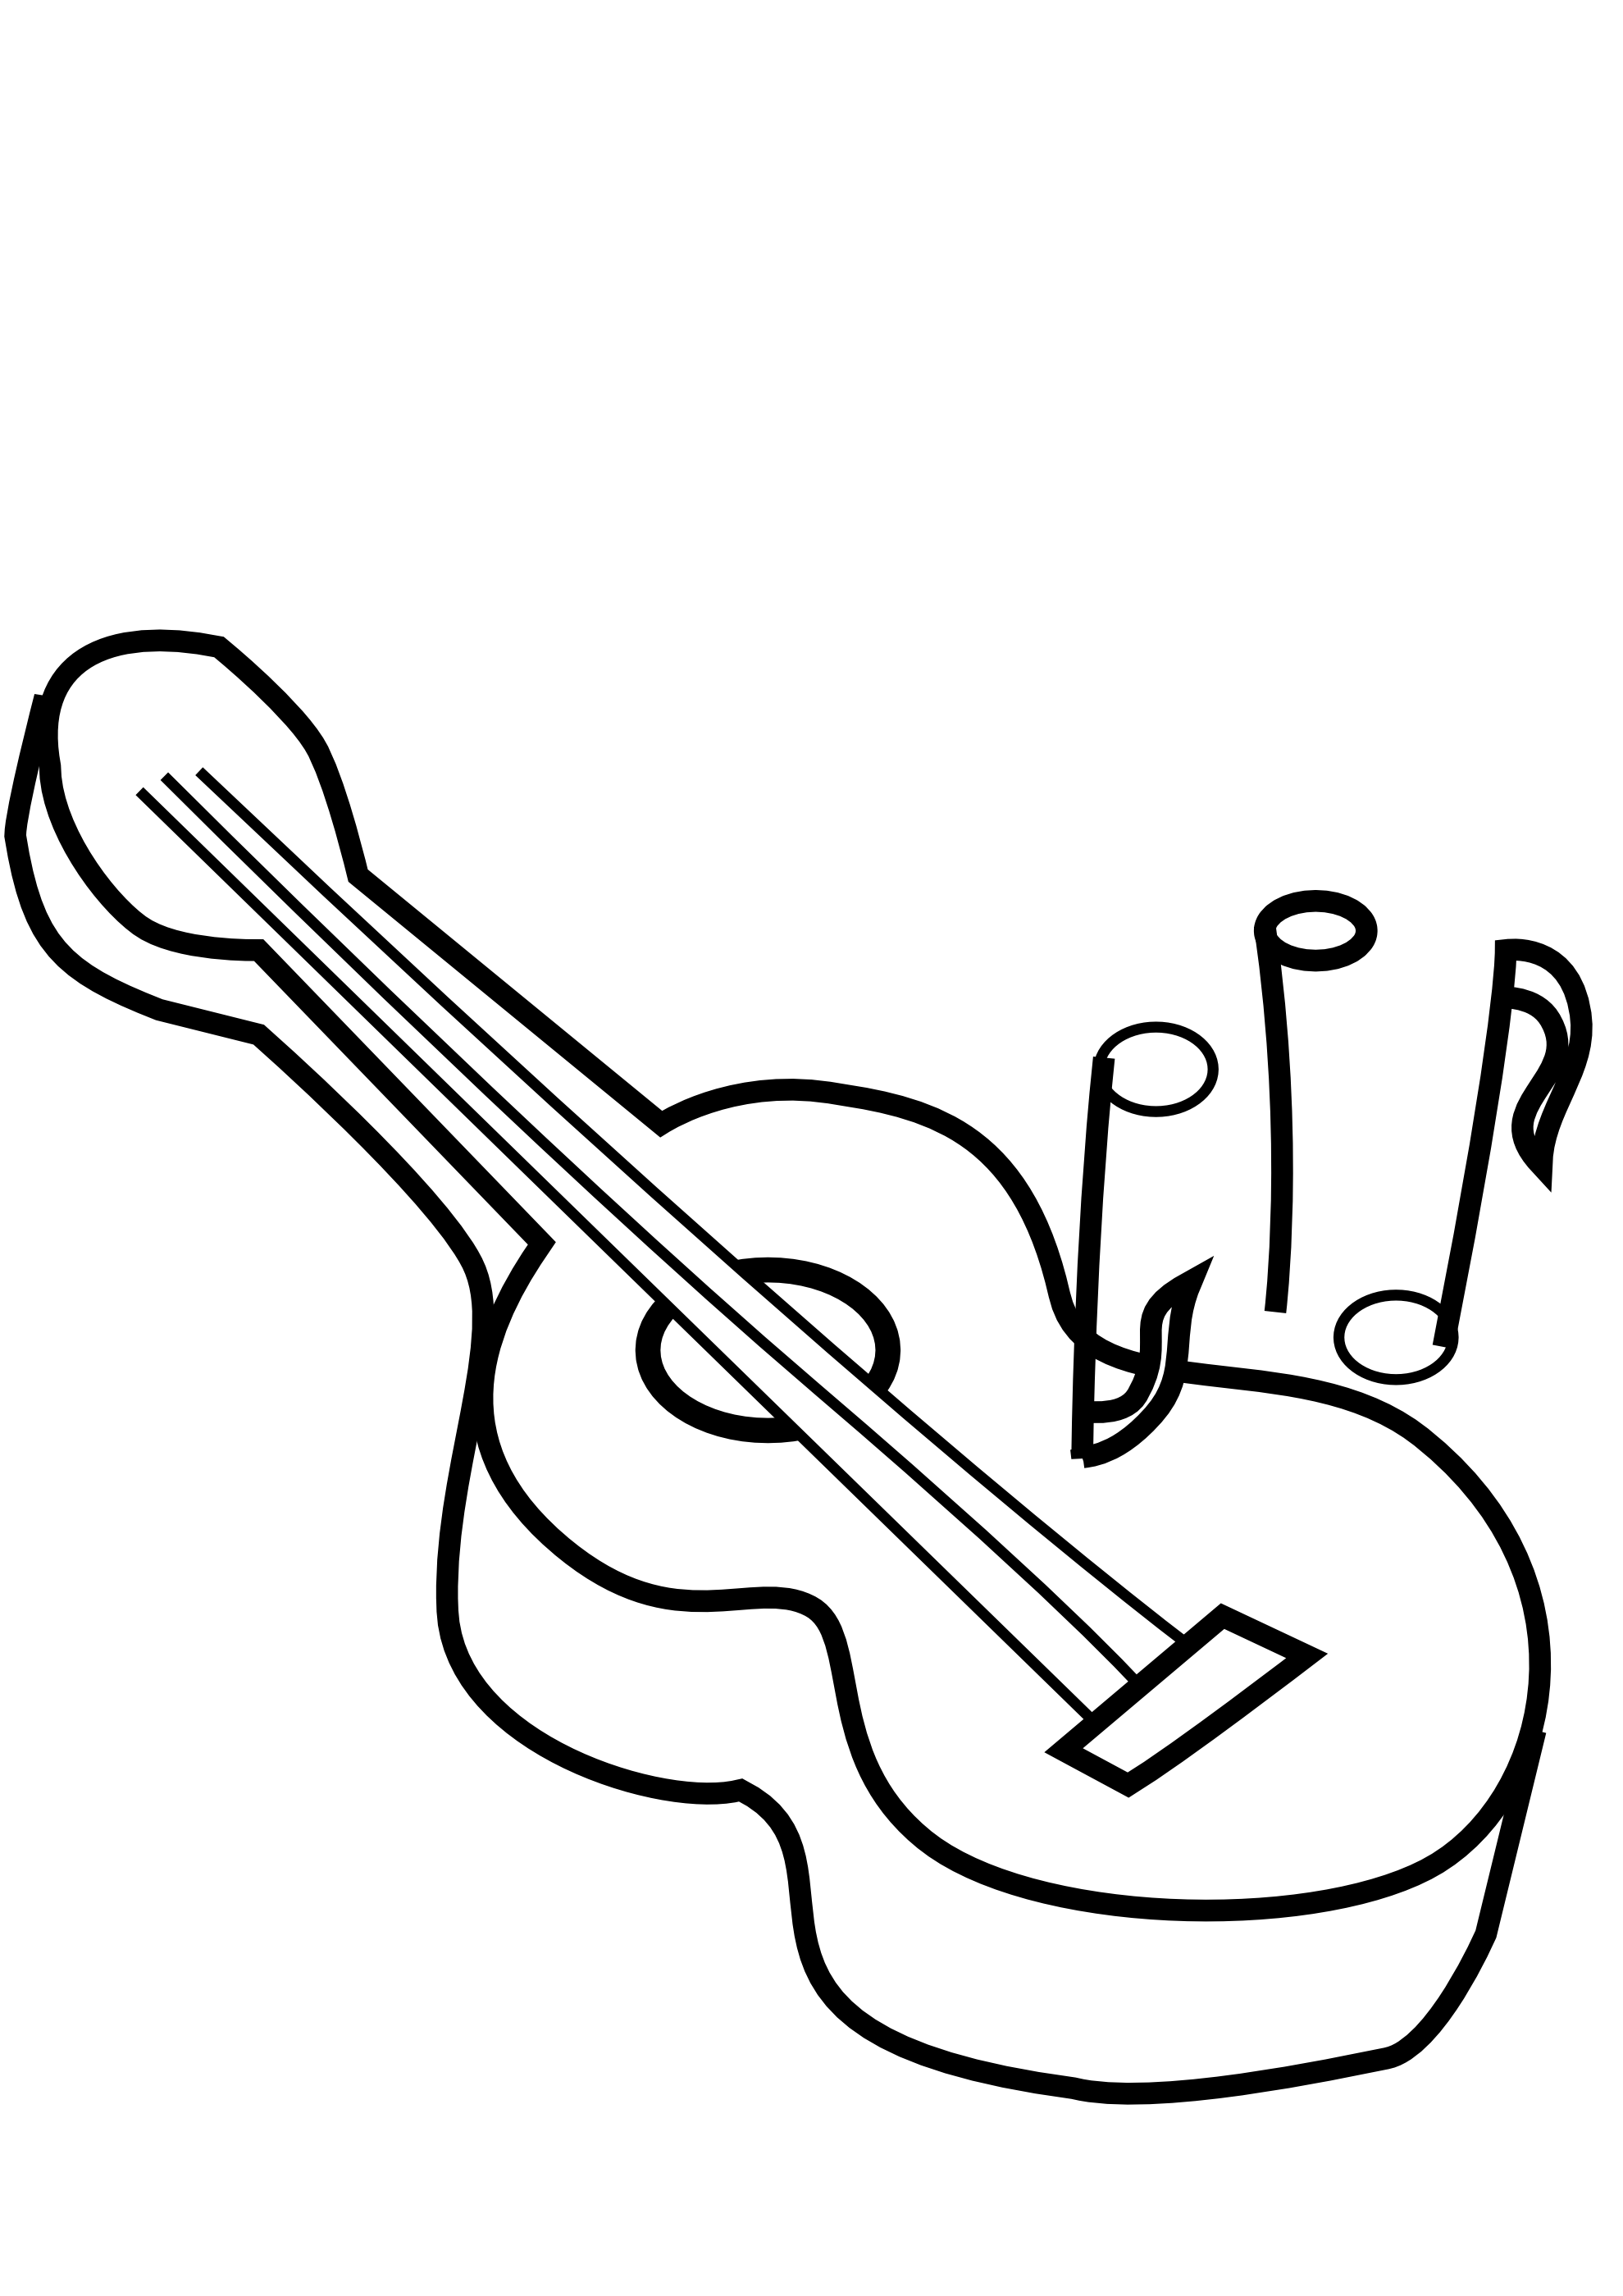 Black And White Cartoon Guitar - ClipArt Best